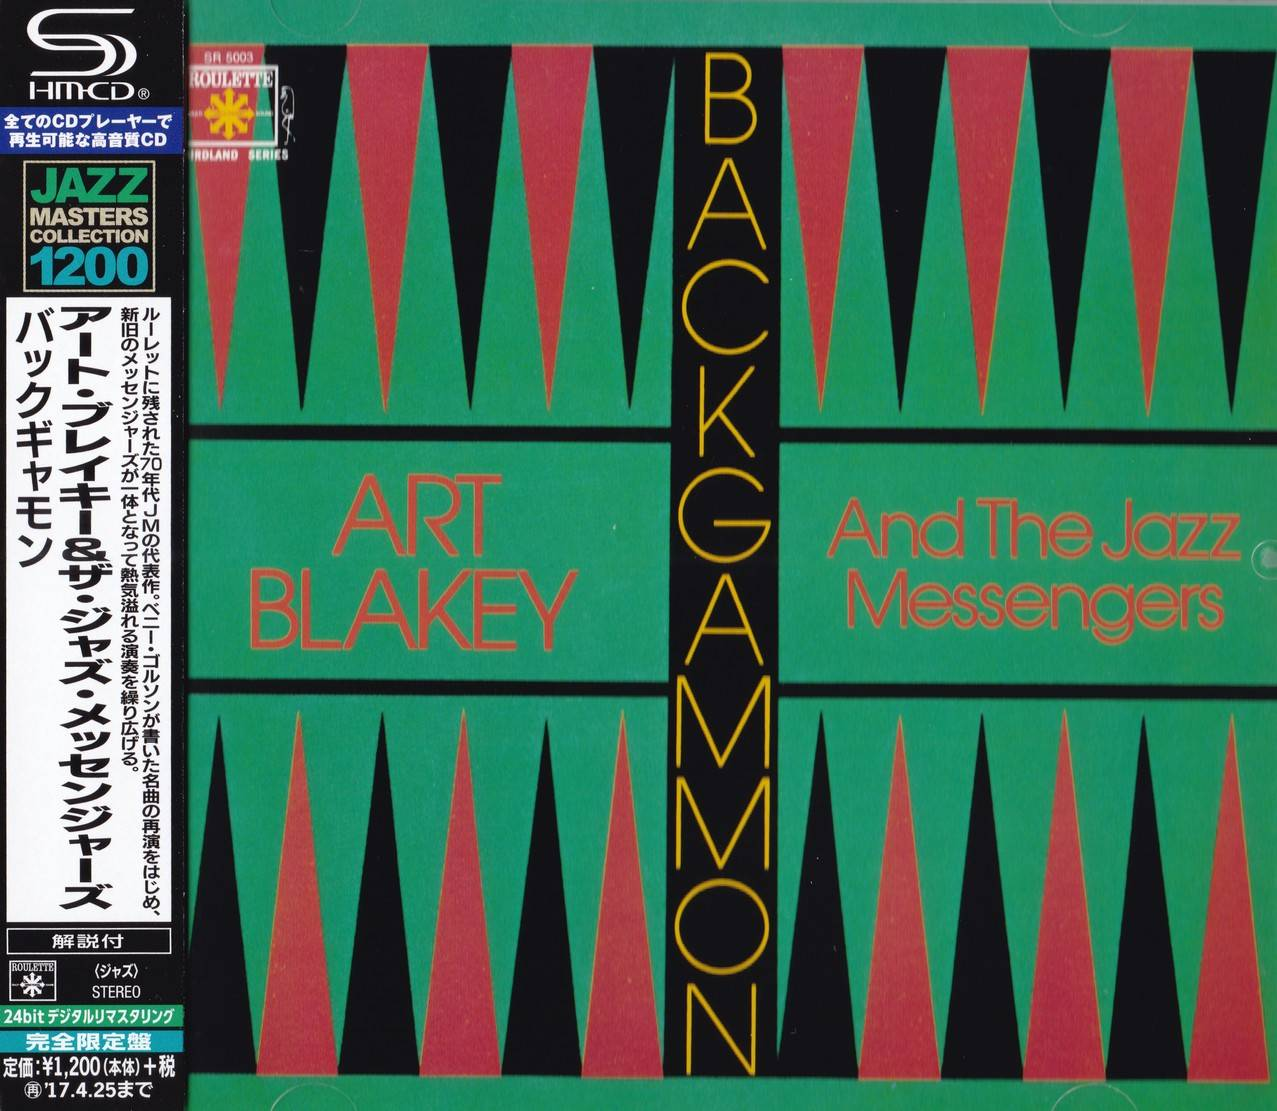 Art Blakey & The Jazz Messengers - Backgammon (1976) {2016 Japan SHM-CD Jazz Masters Collection 1200 Series WPCR-29102}